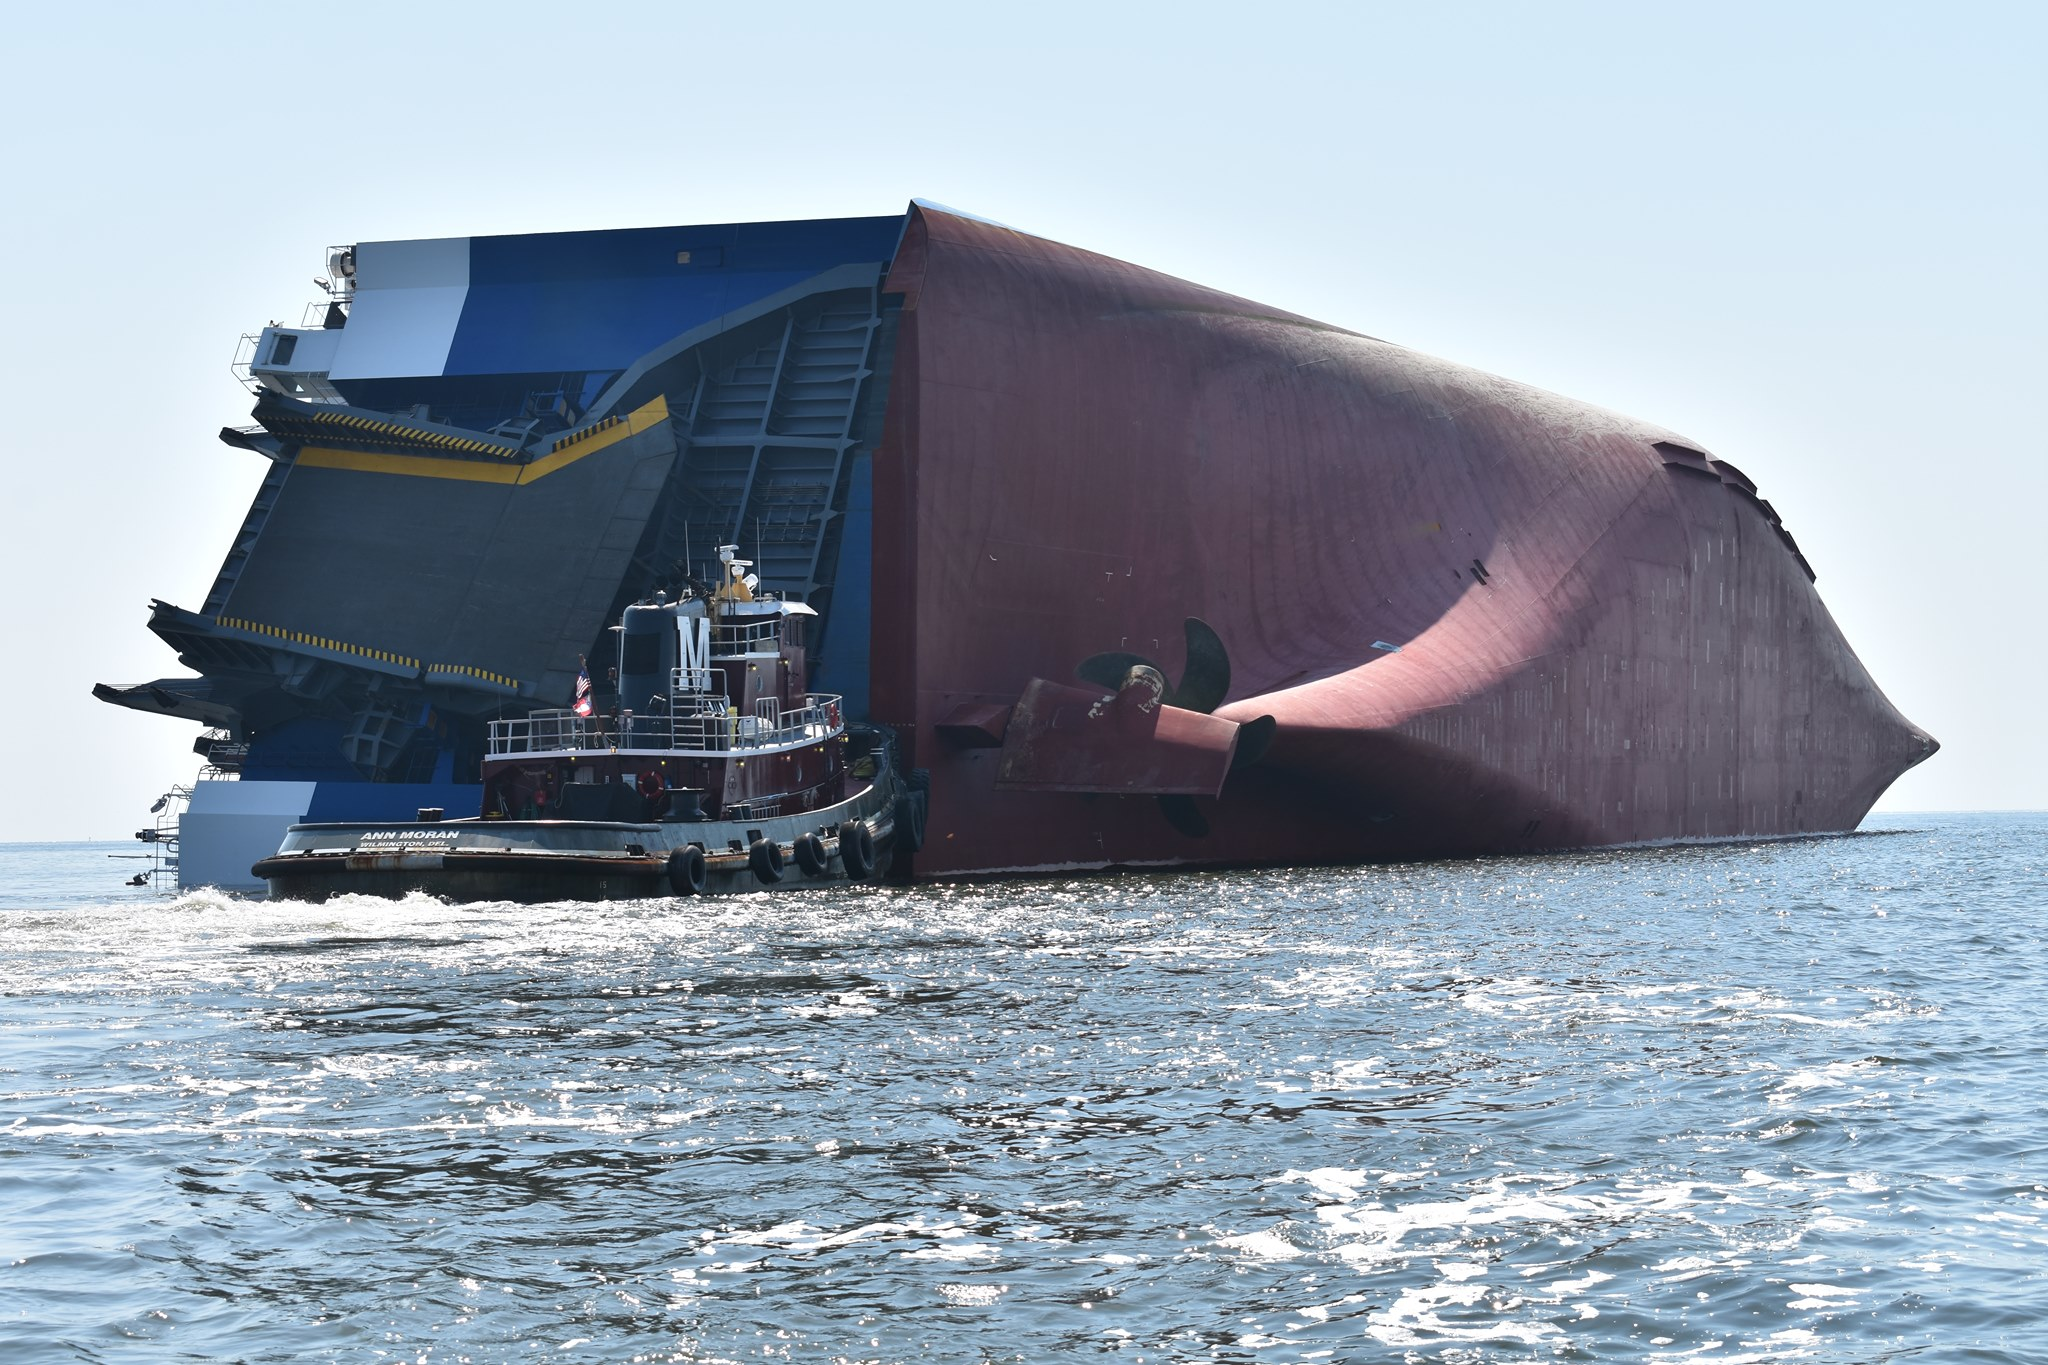 Crew Members Of Capsized Cargo Ship Rescued Cnn Video